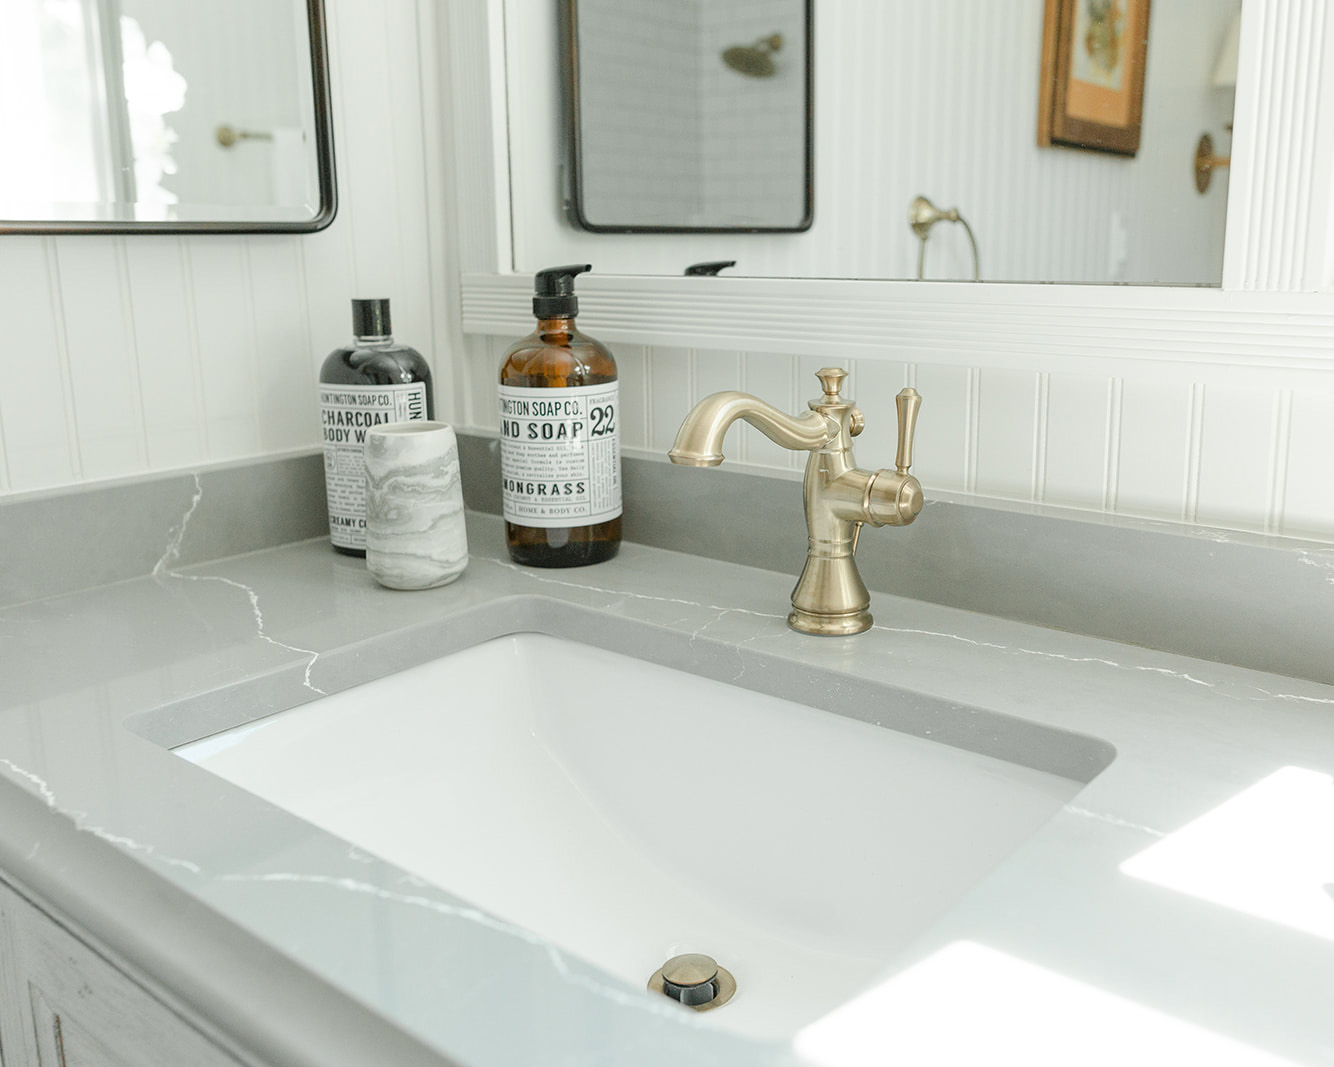 corner bathroom sink.jpg